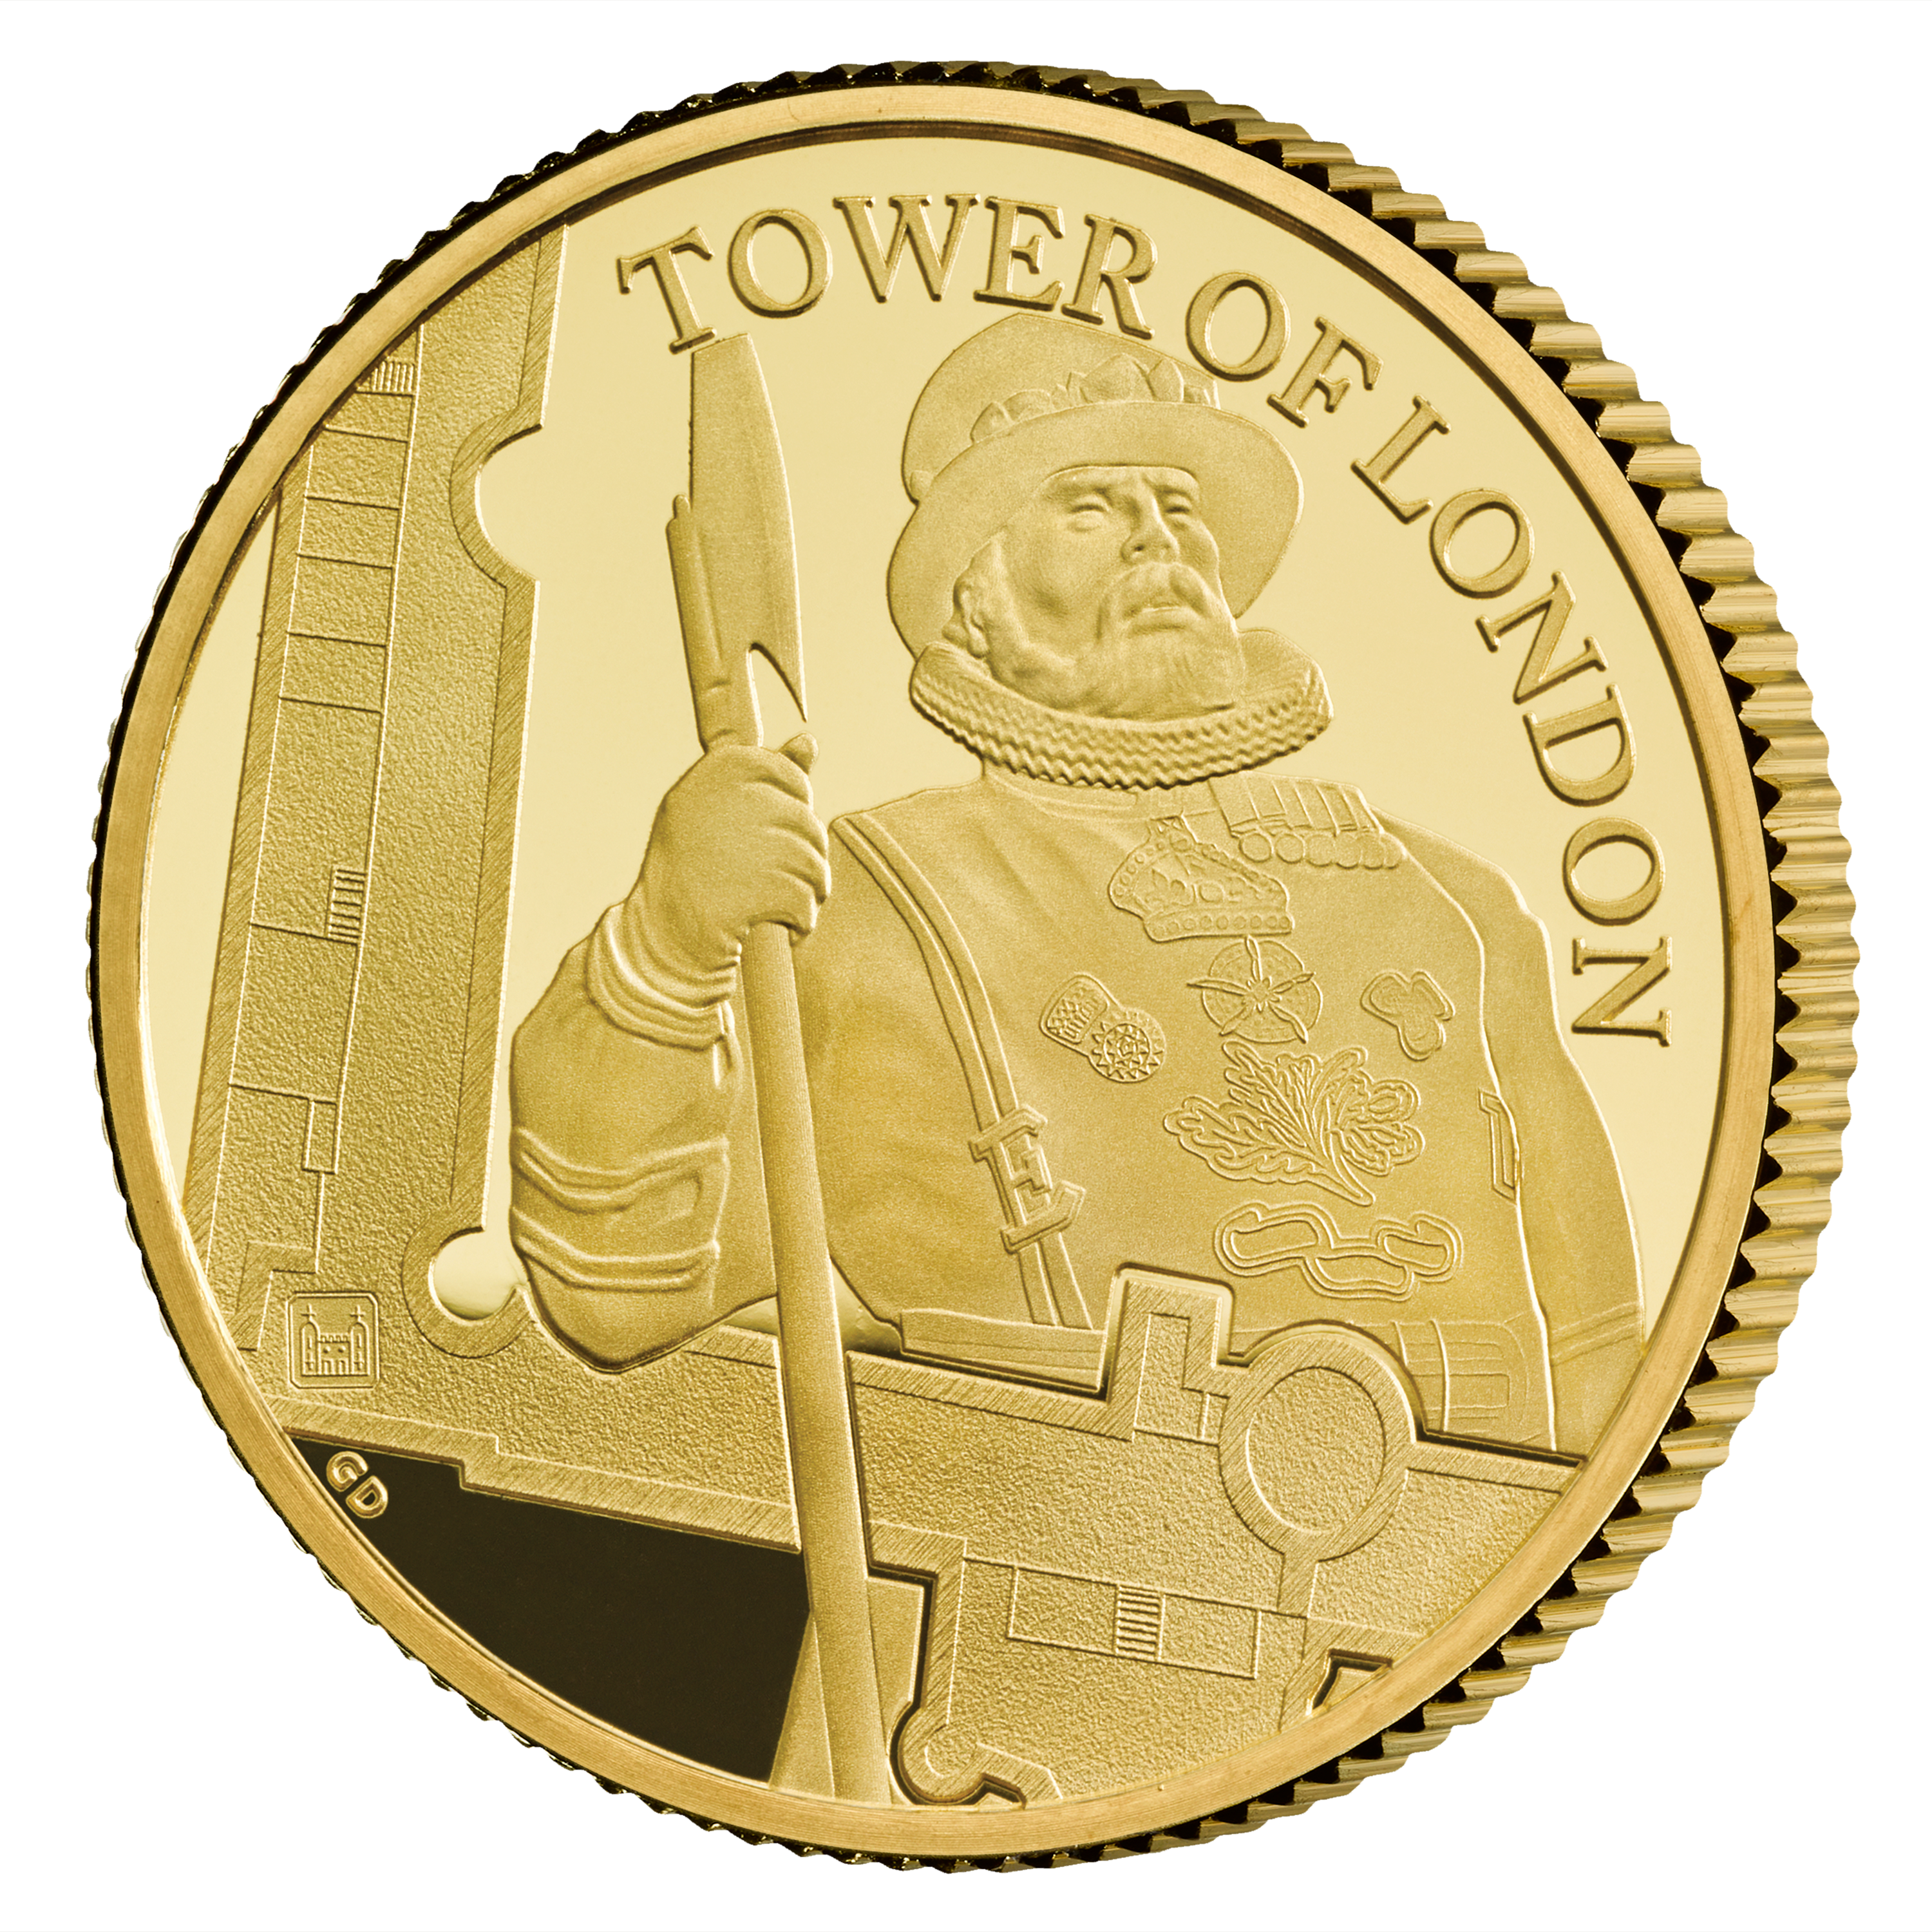 25 GBP Goldmünze Großbritannien The Tower of London - Die Yeoman Warders 1/4oz 2019 PP